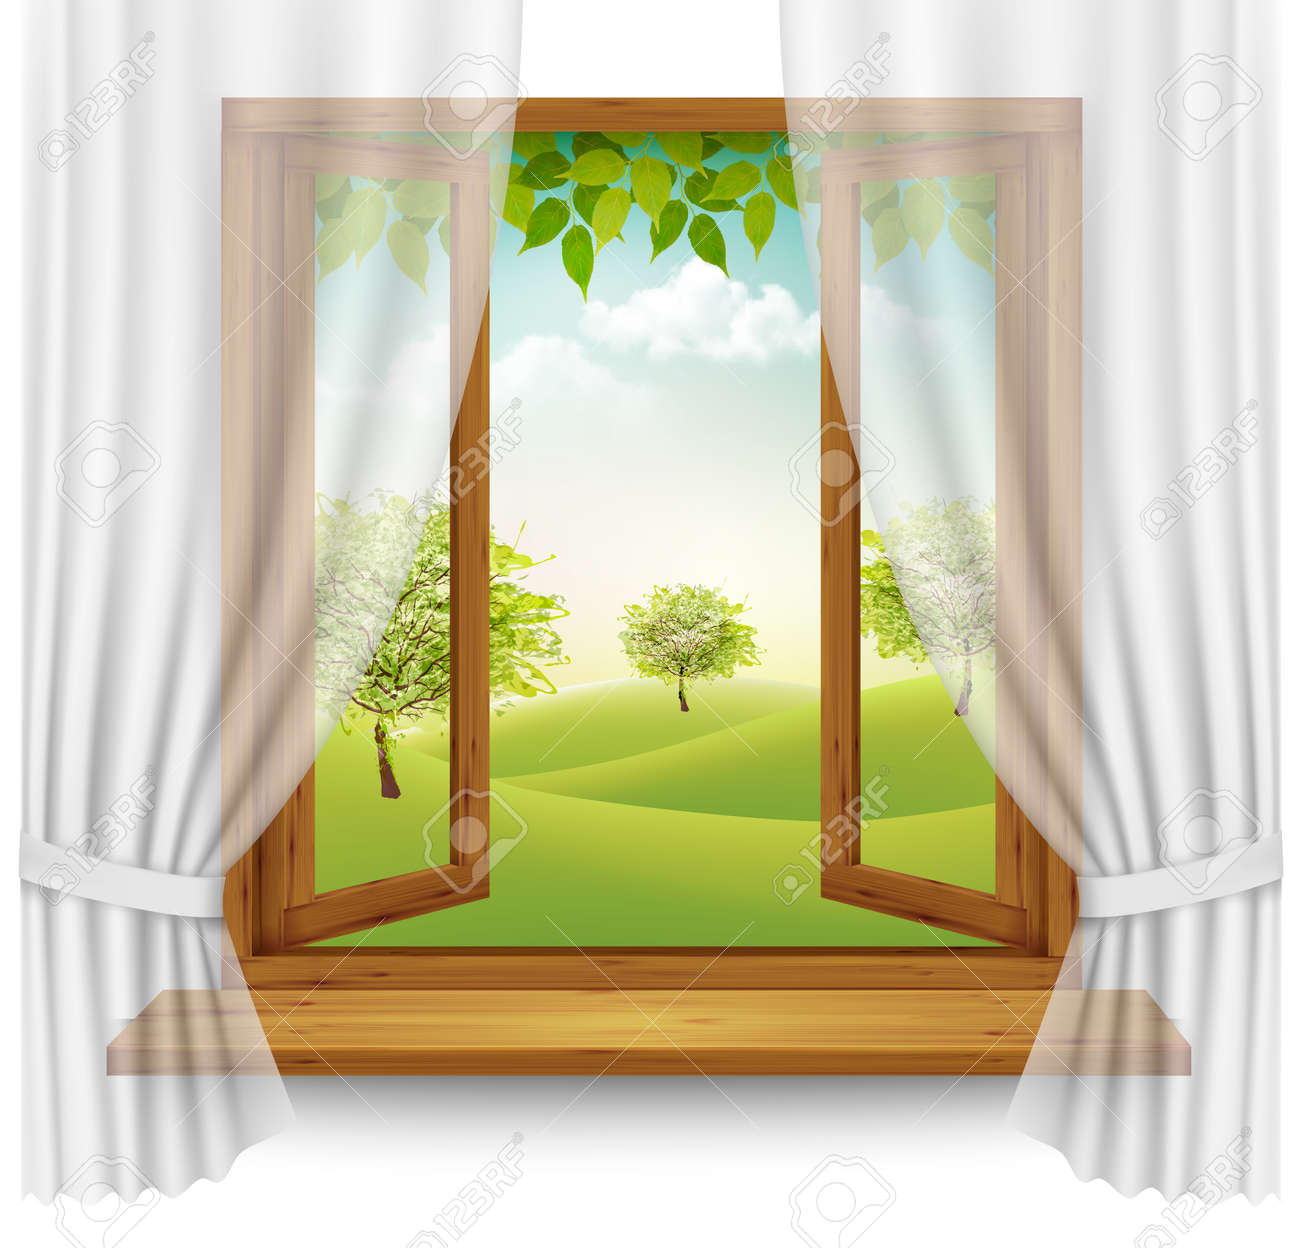 Nature Summer Background With Wooden Window Frame Curtains Vector Stock